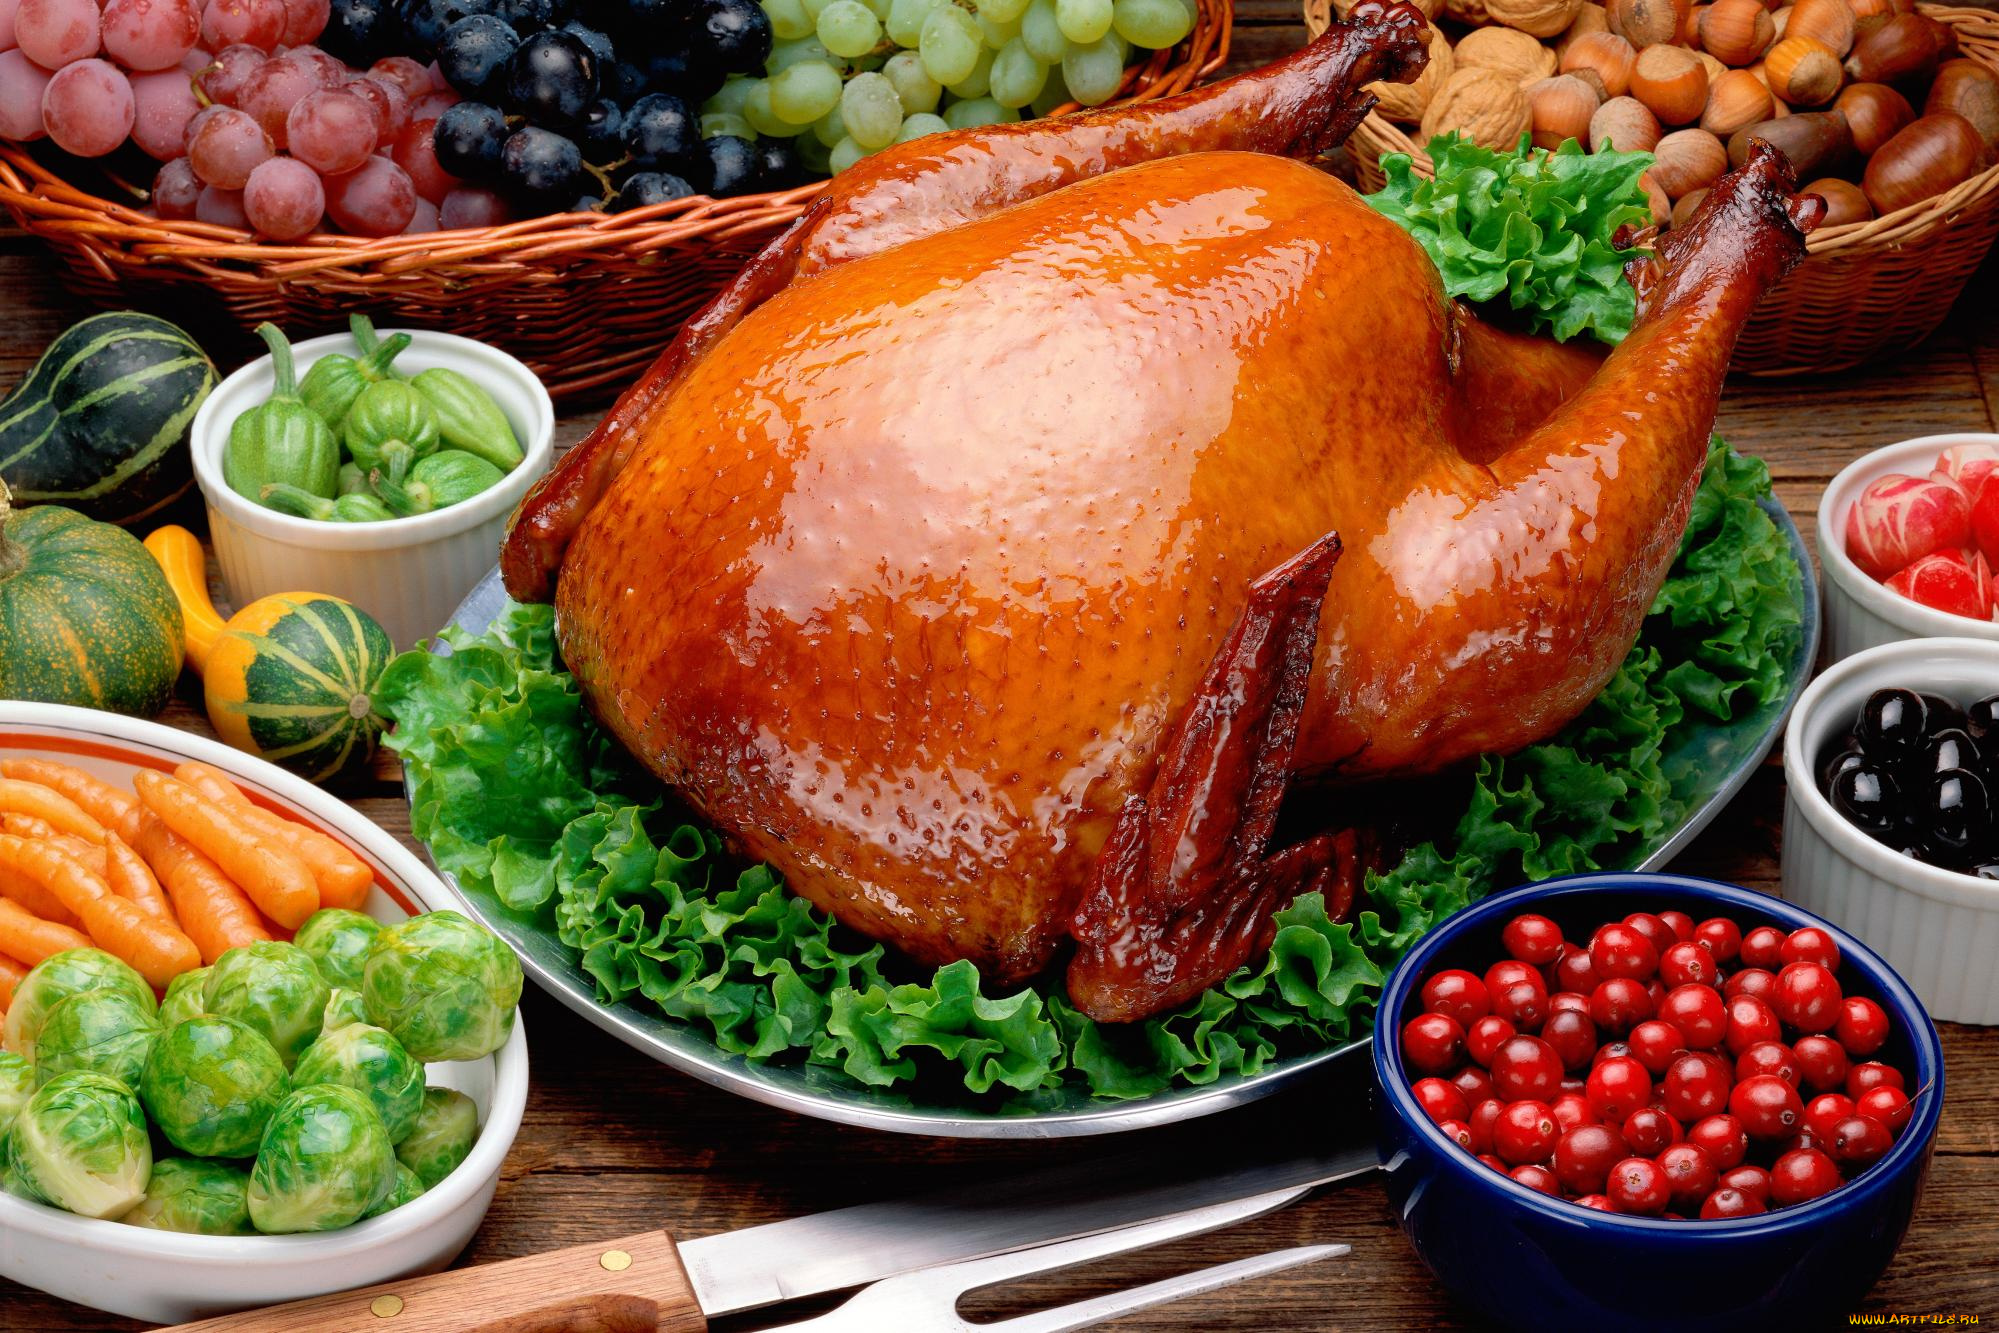 thanksgiving food pictures - HD1920×1080